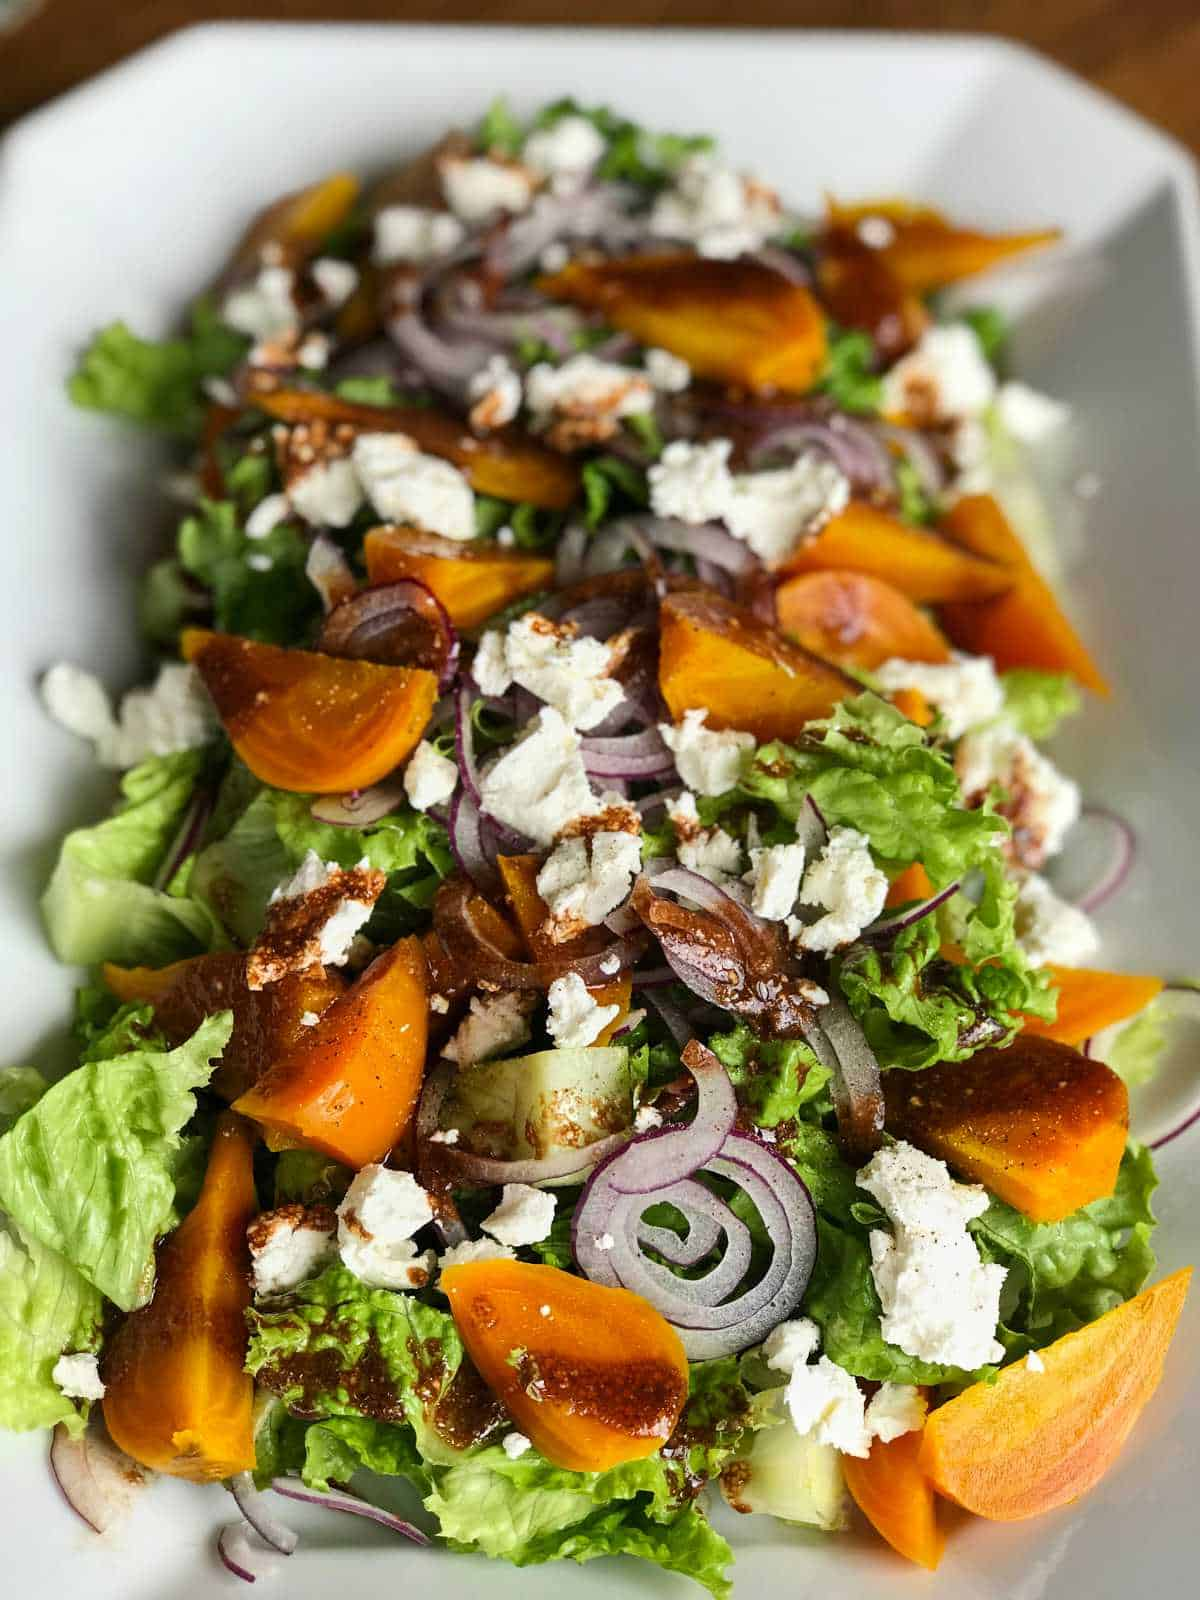 Salad with golden beets and goat cheese.